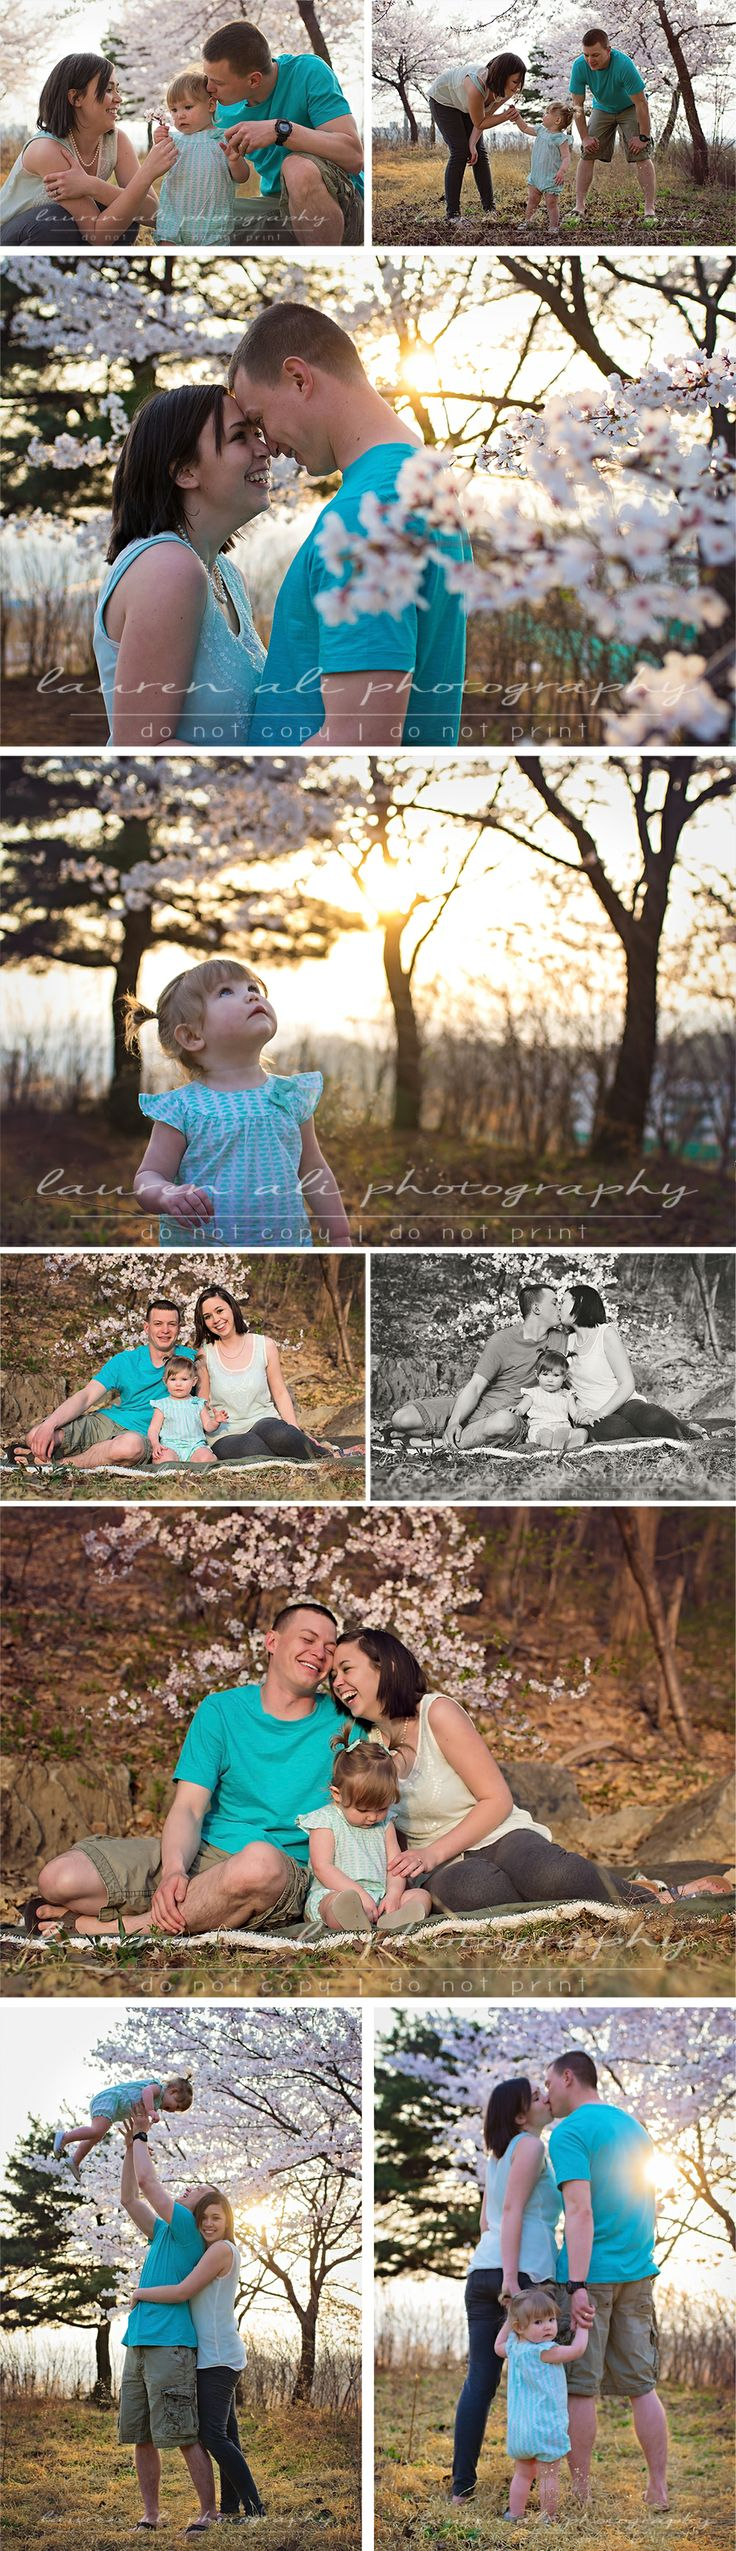 a sweet cherry blossom family session | Lauren Ali Photography | www.laurenaliphotography.com